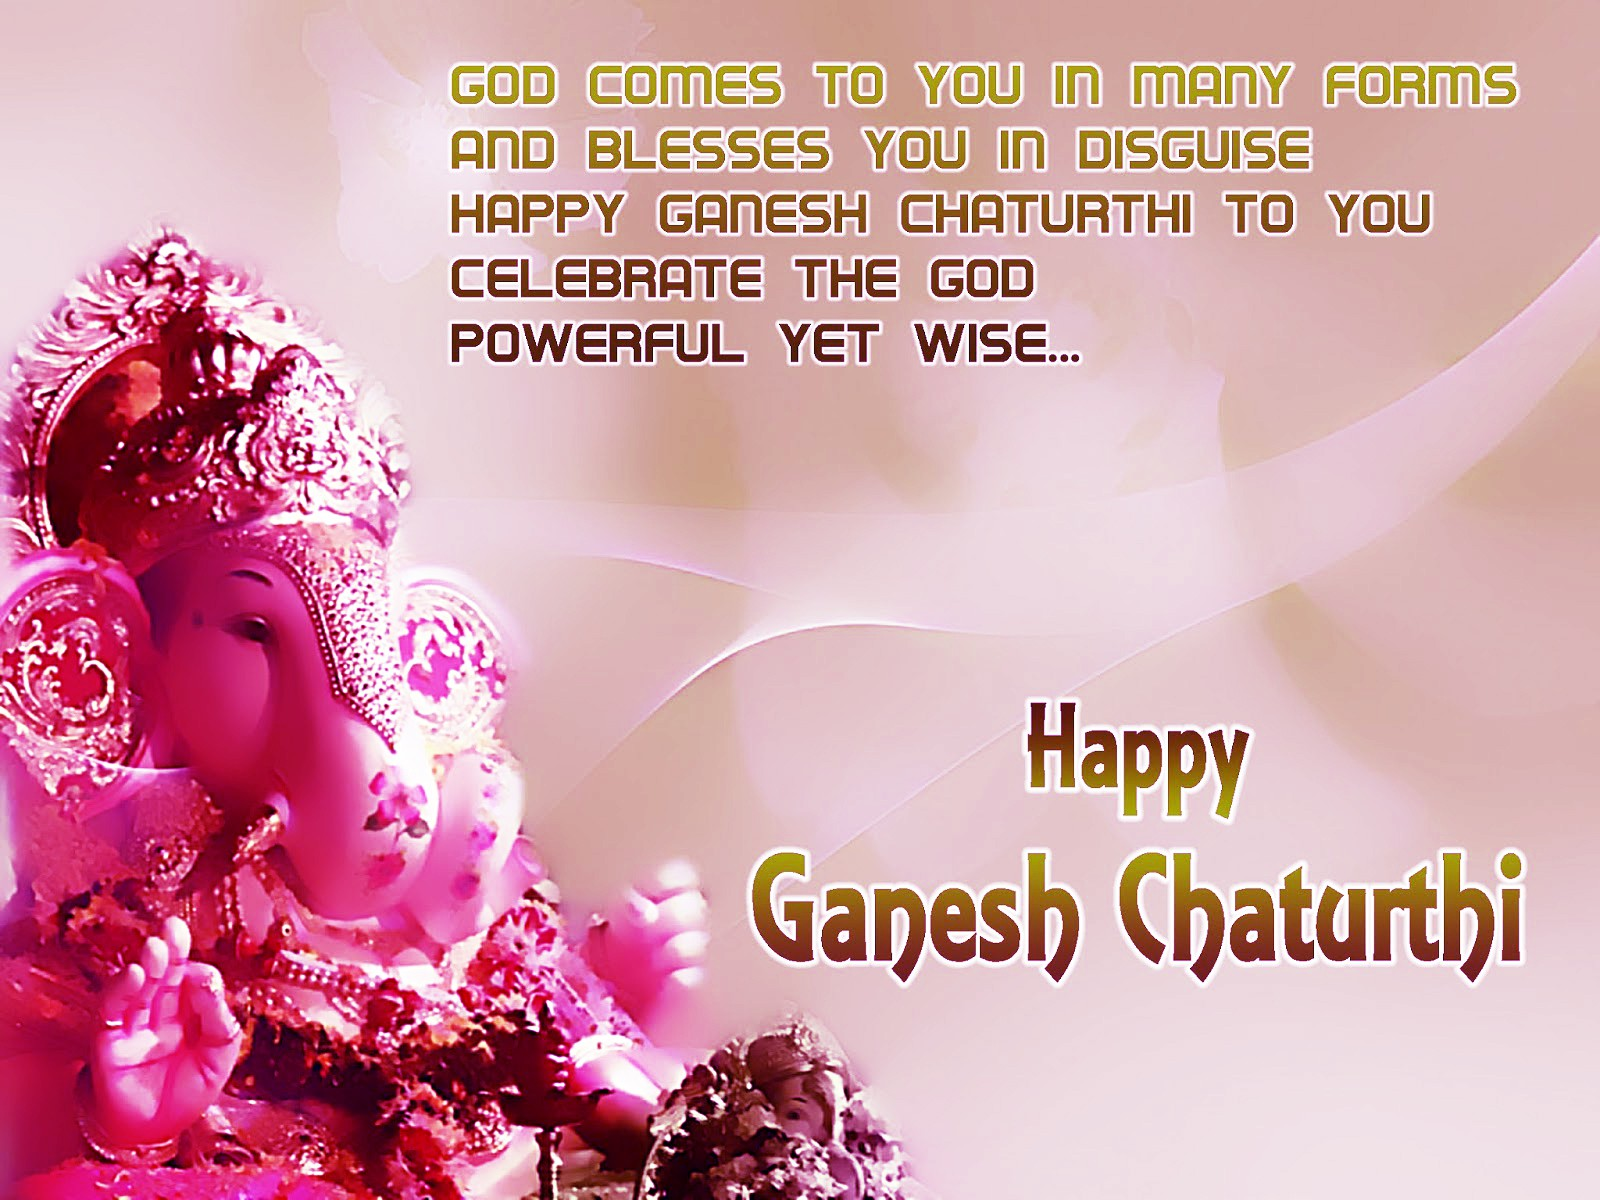 Happy ganesh chaturthi greetings cards images photos quotes in english ganesh chaturthi greetings cards m4hsunfo